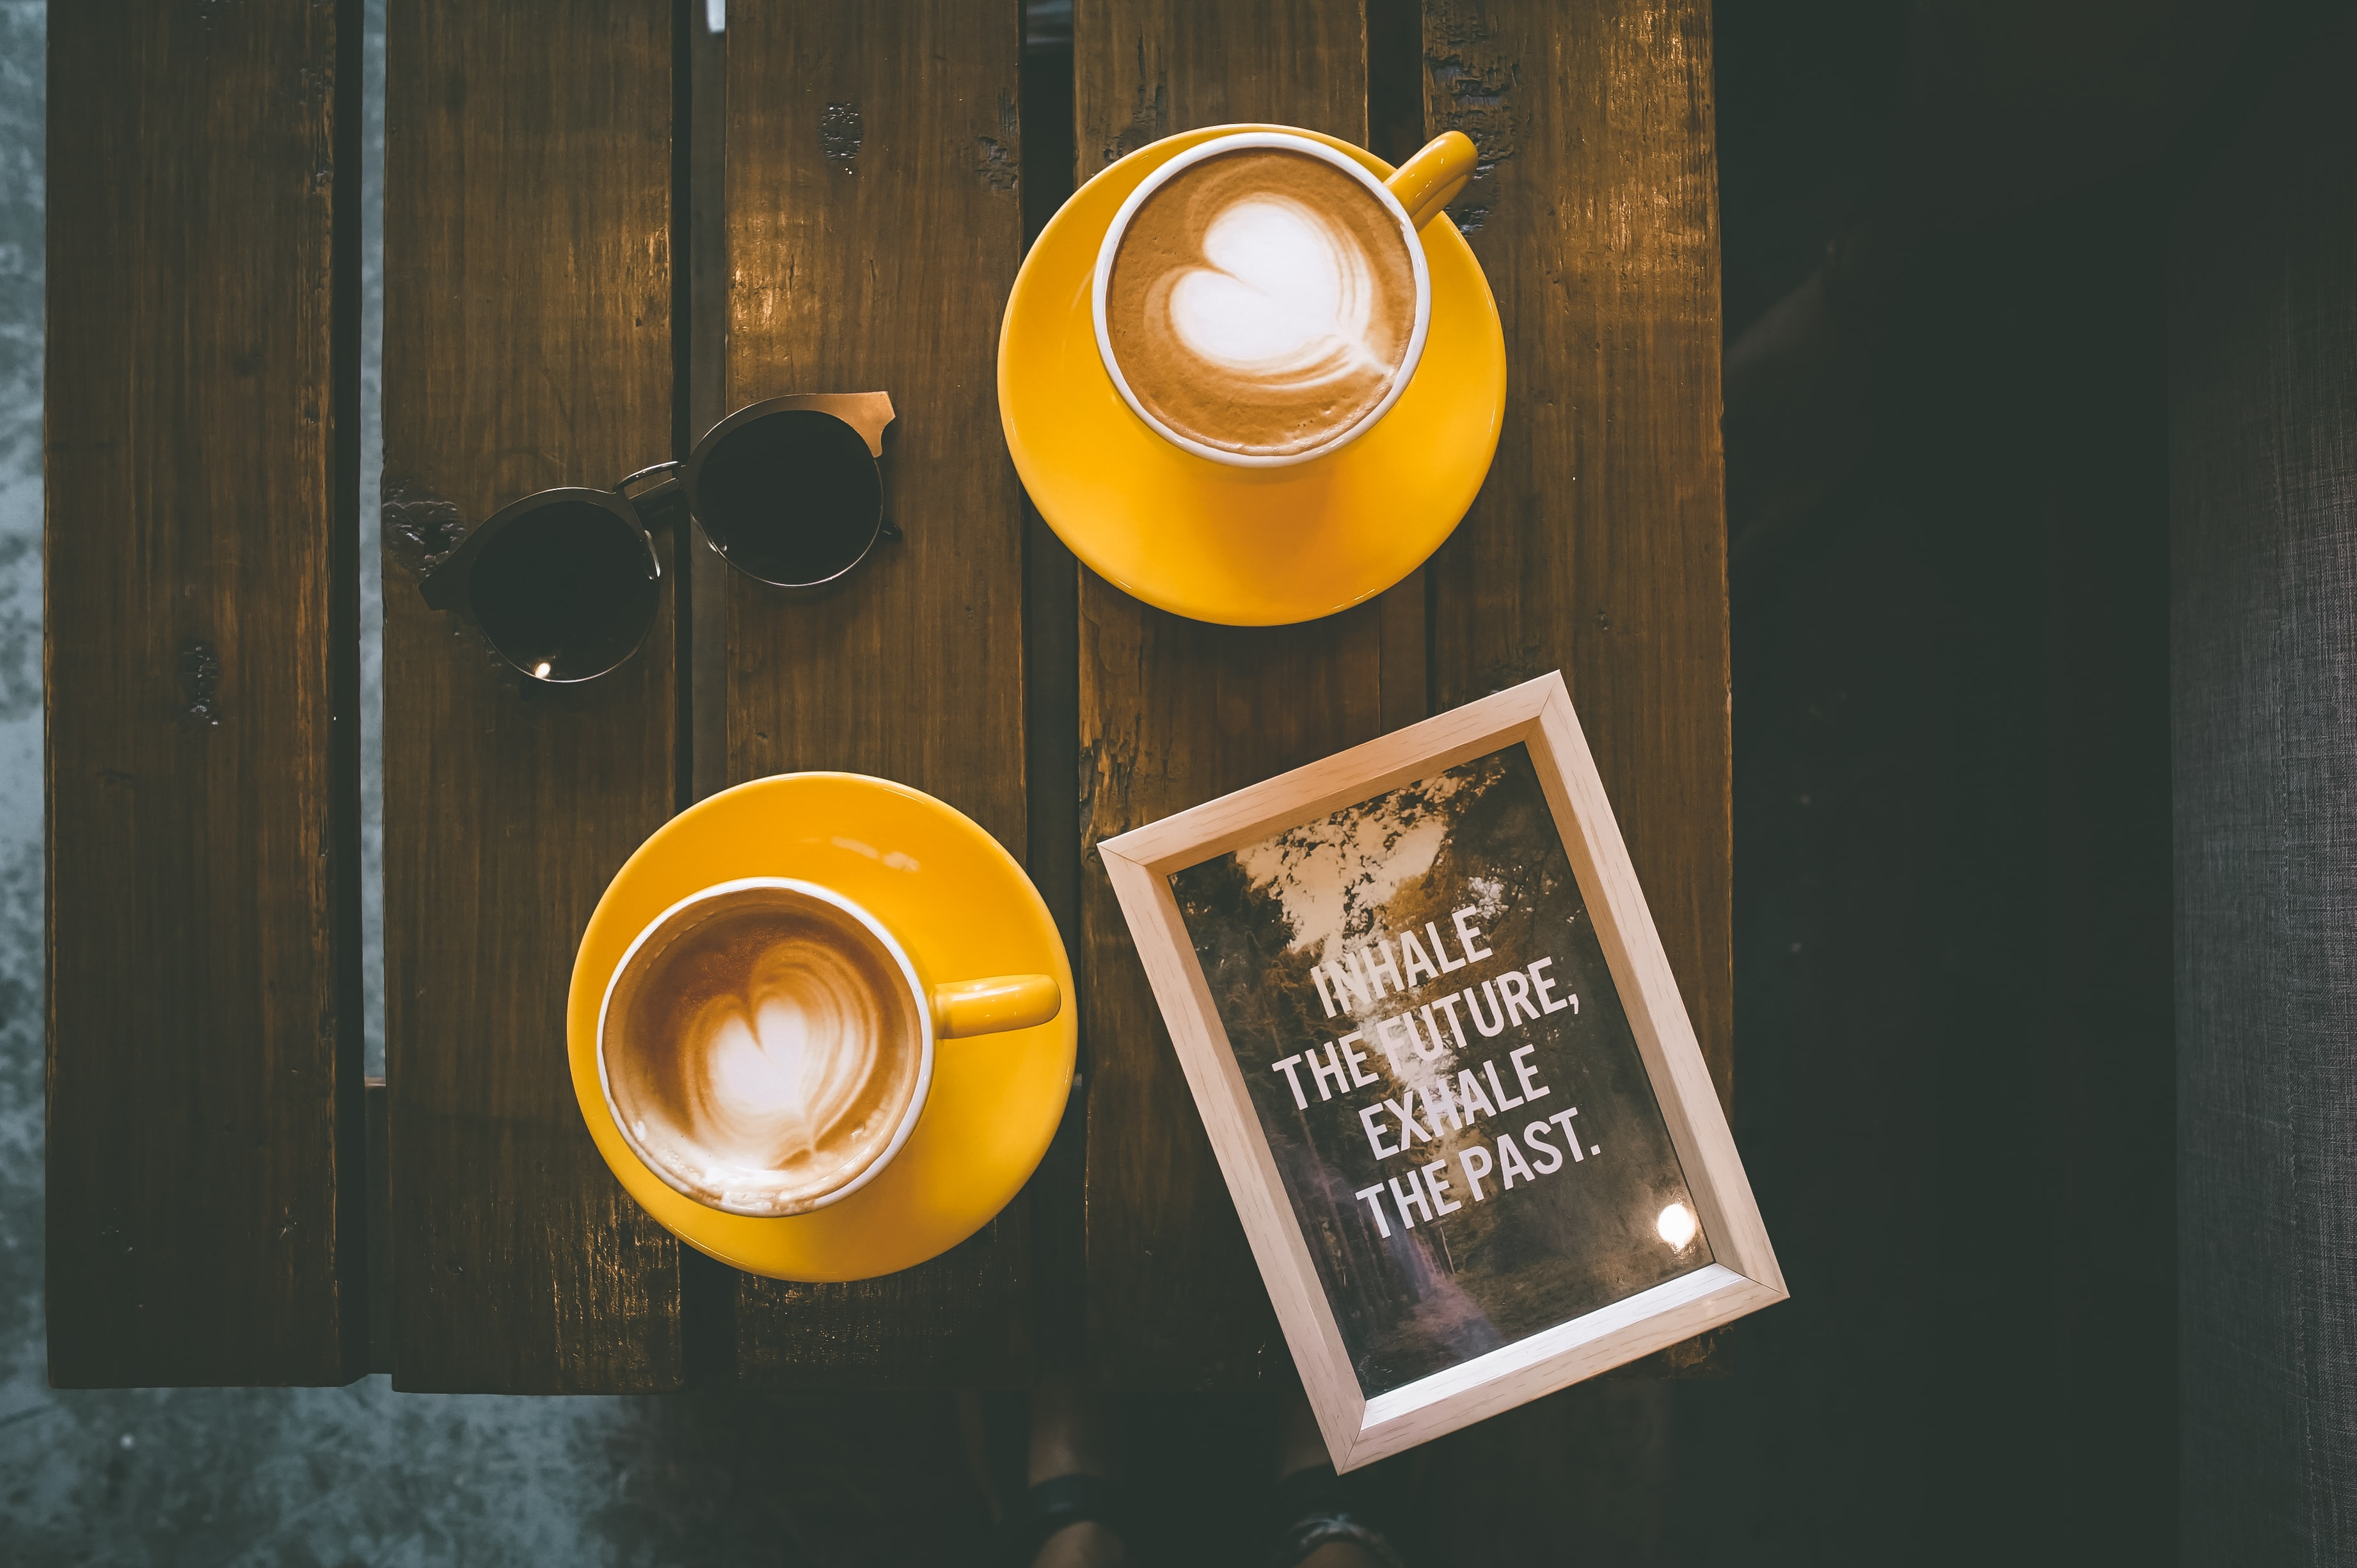 Two cups of latte coffee art on wooden table with print artwork and sunglasses, Cebu City